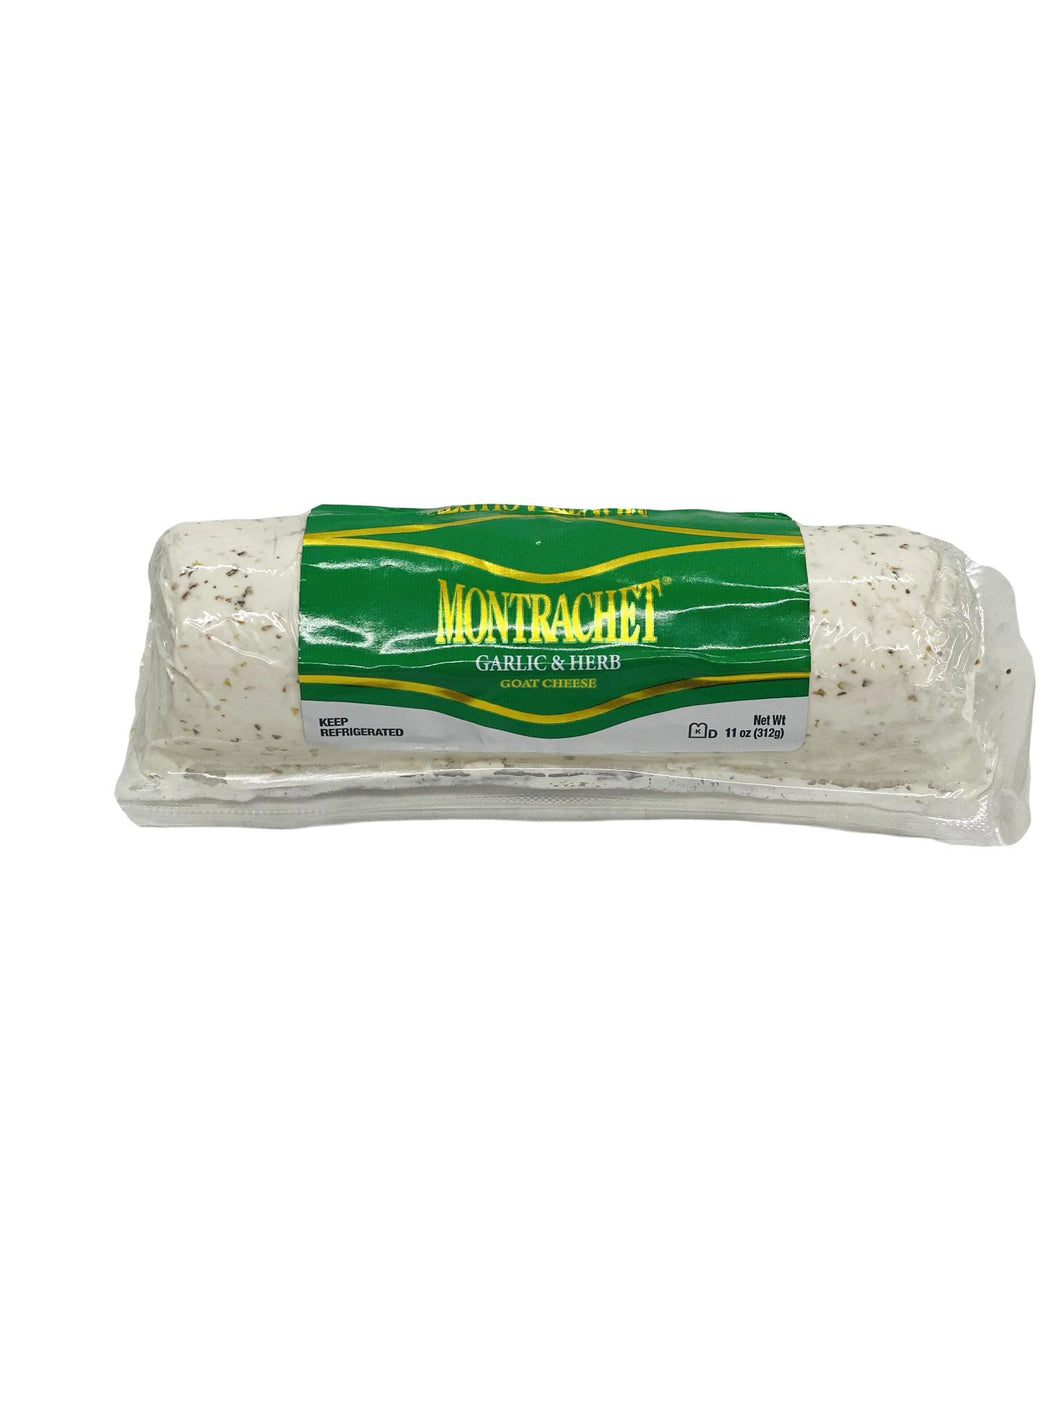 Montrachet Garlic & Herb Goat Cheese, 11 oz